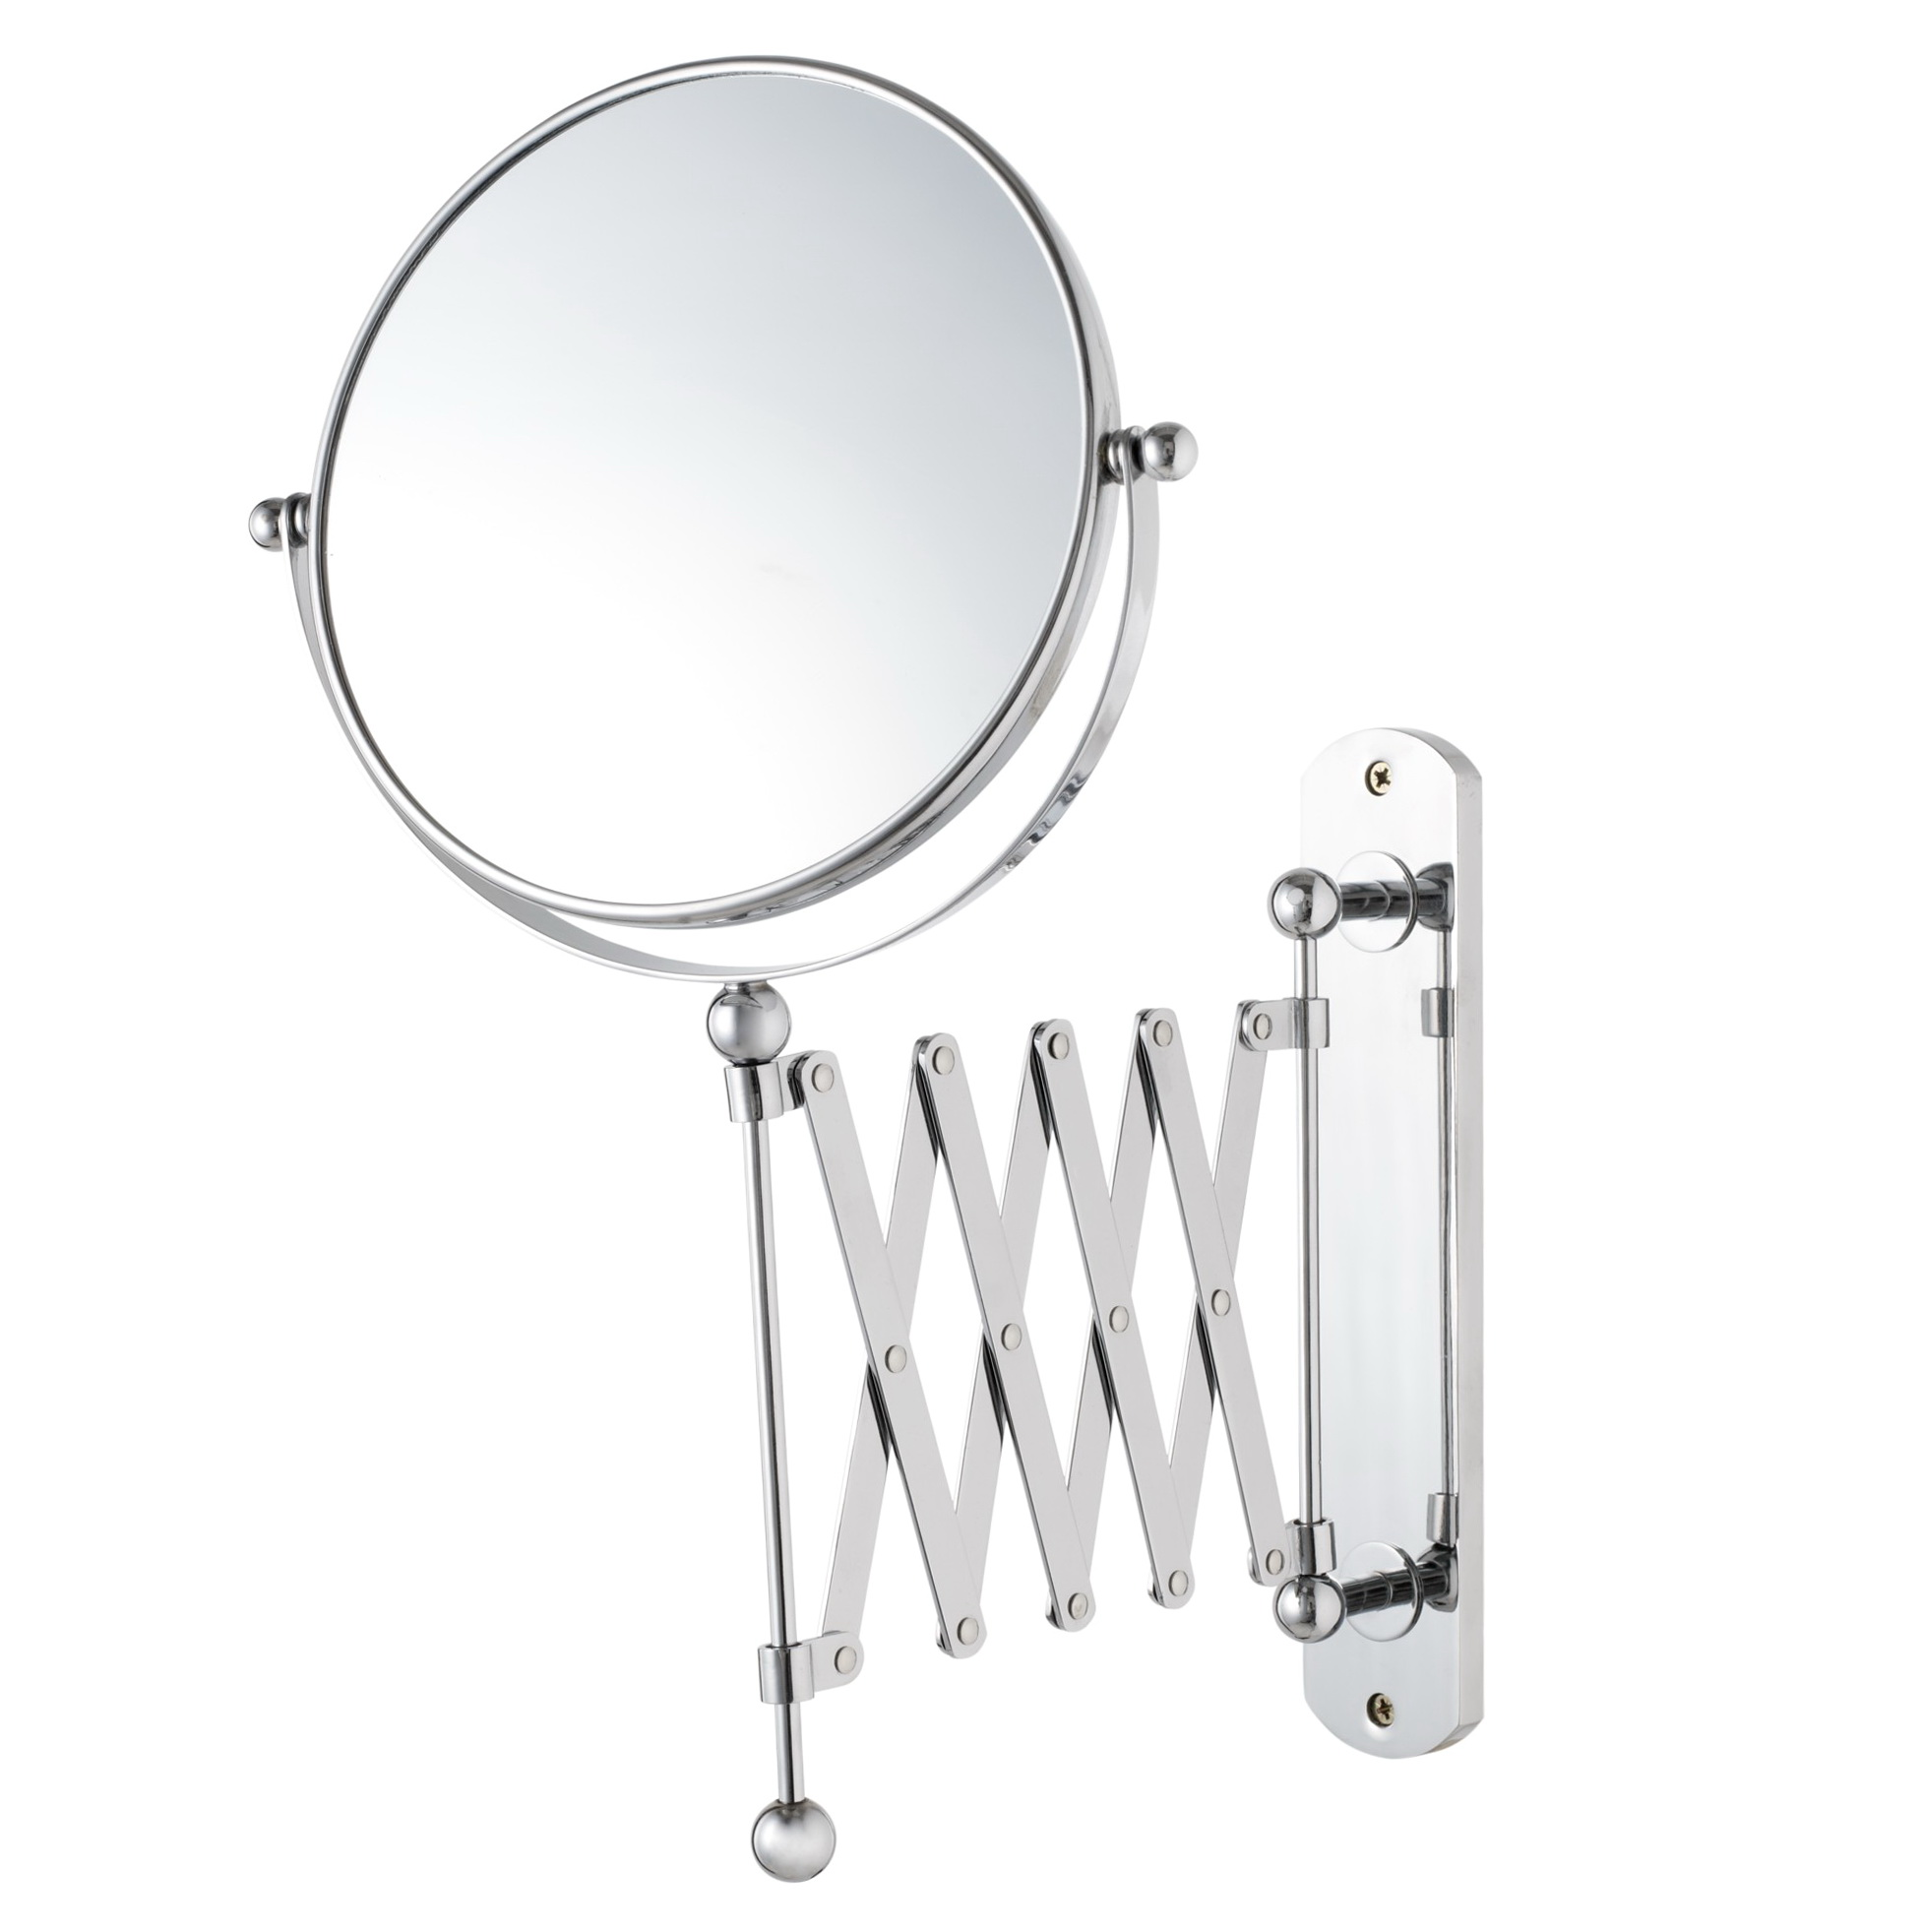 Bathroom magnifying mirror wall mounted home design ideas Bathroom magnifying mirrors wall mounted